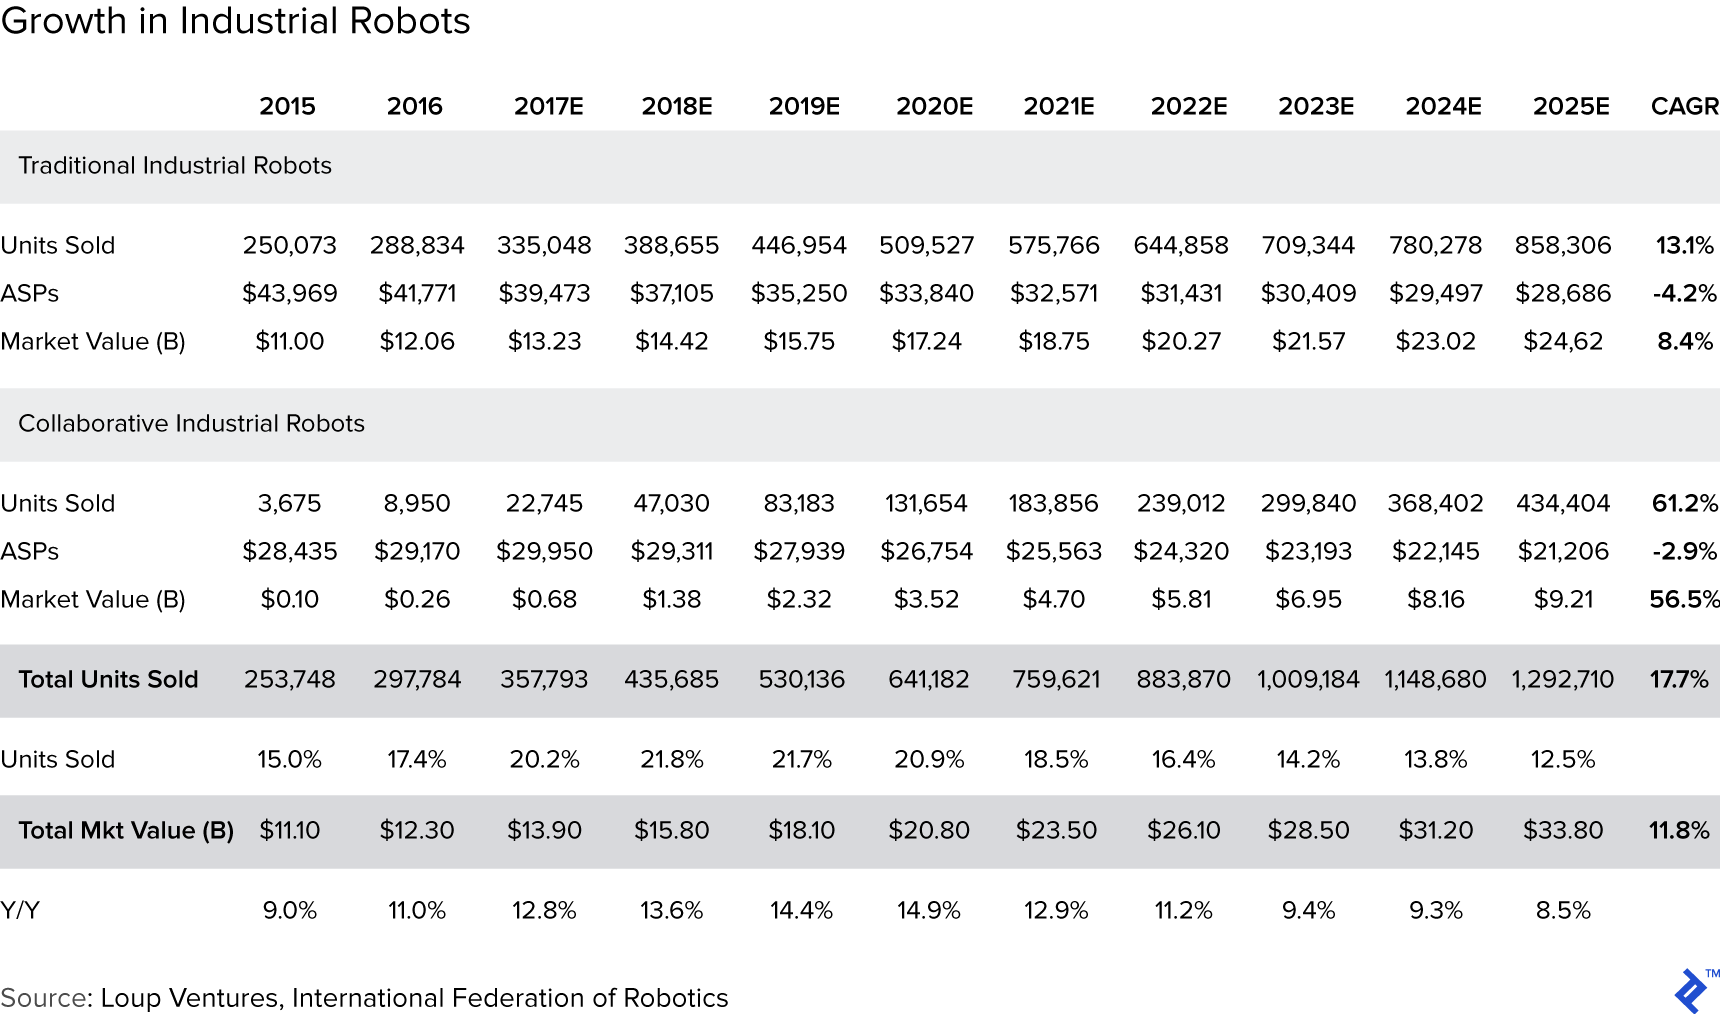 Table: Growth in Industrial Robots